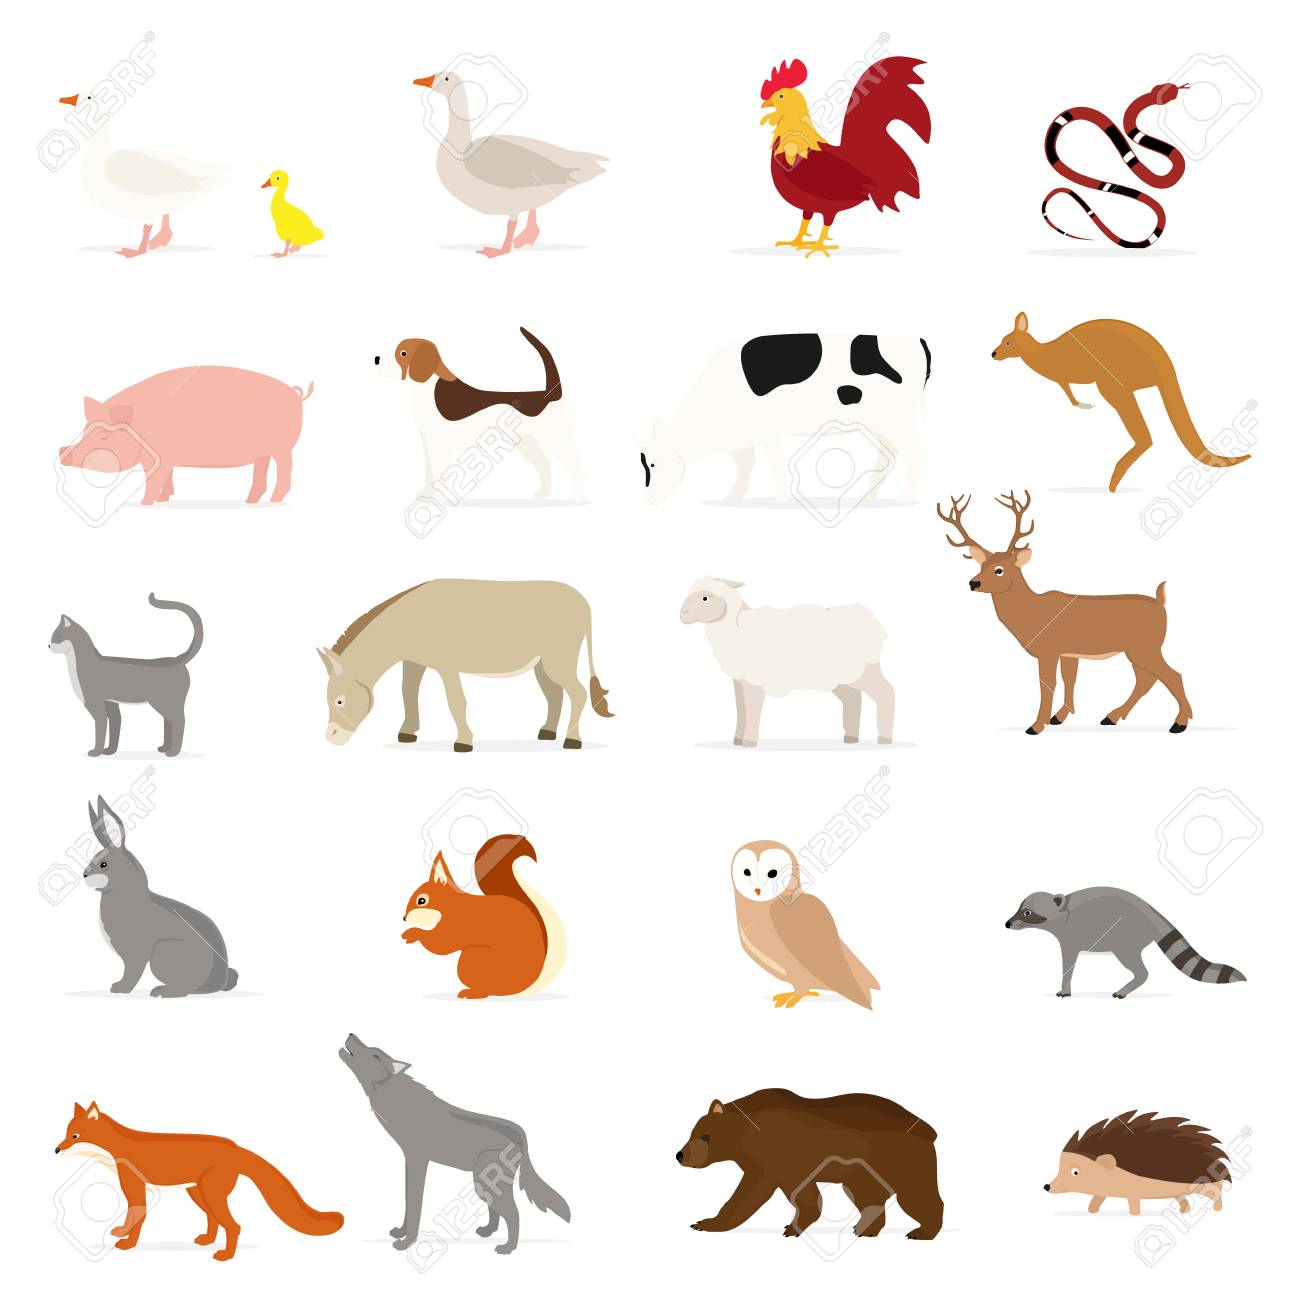 Cute animals collection: farm animals, wild animals isolated on white background. Vector illustration design template - 121671736